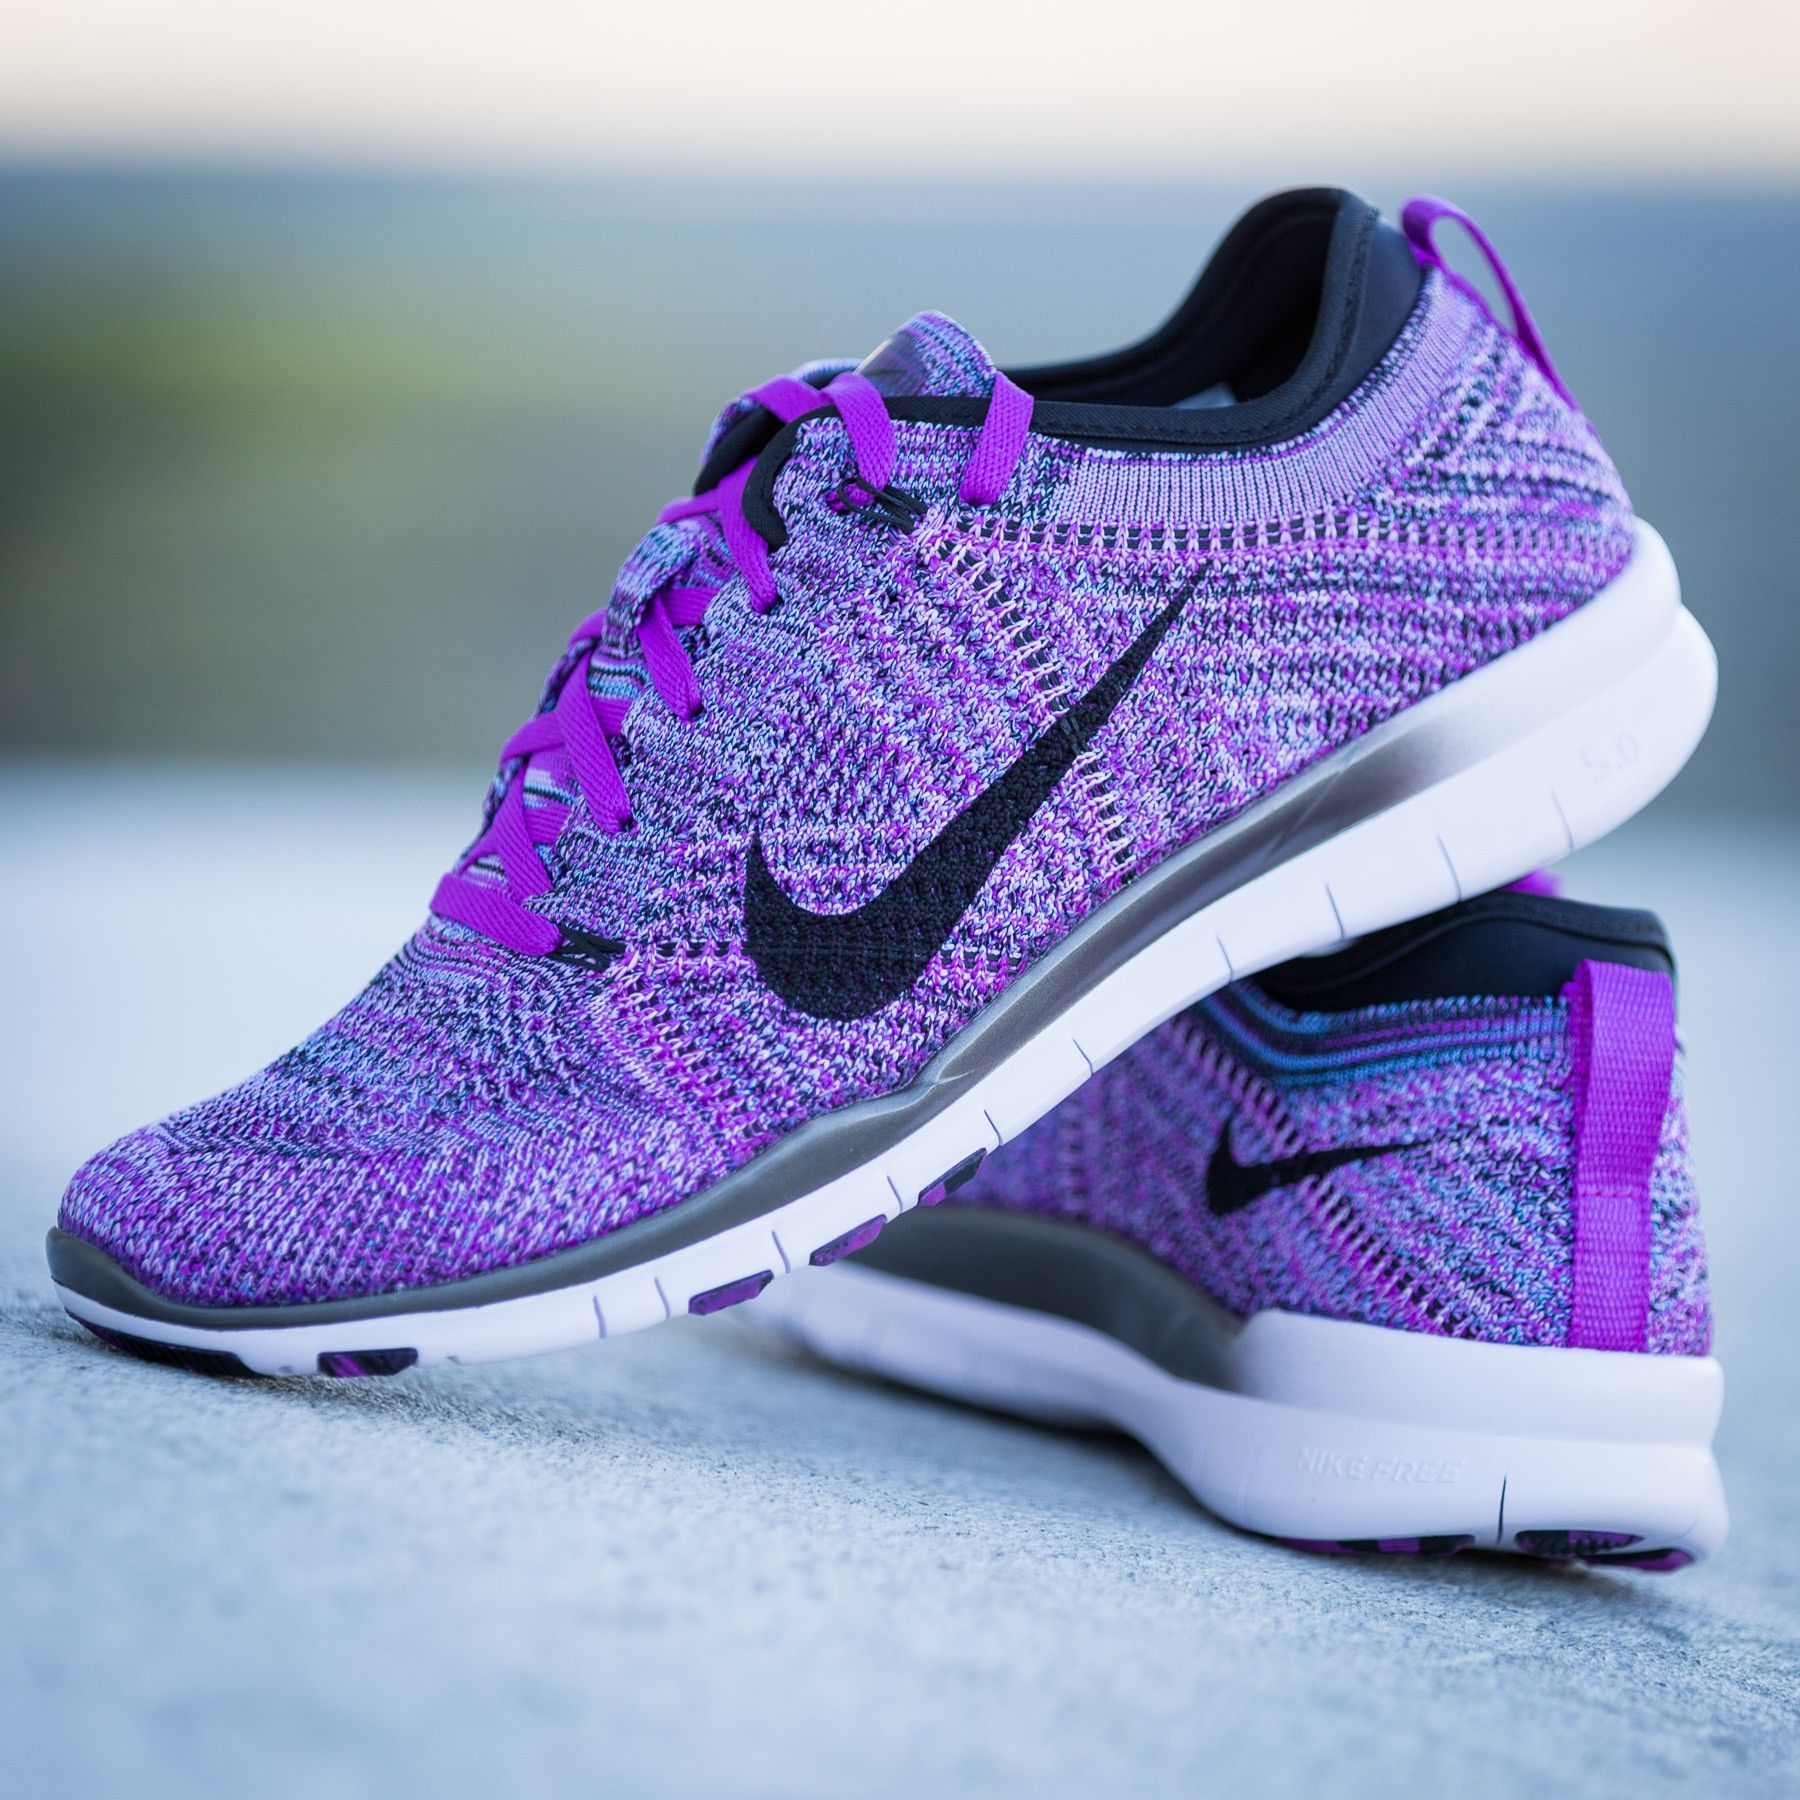 new style 19120 ace4e Nike women s running shoes are designed with innovative features and…   VenusHotWife7⃣2⃣K on Purple ...